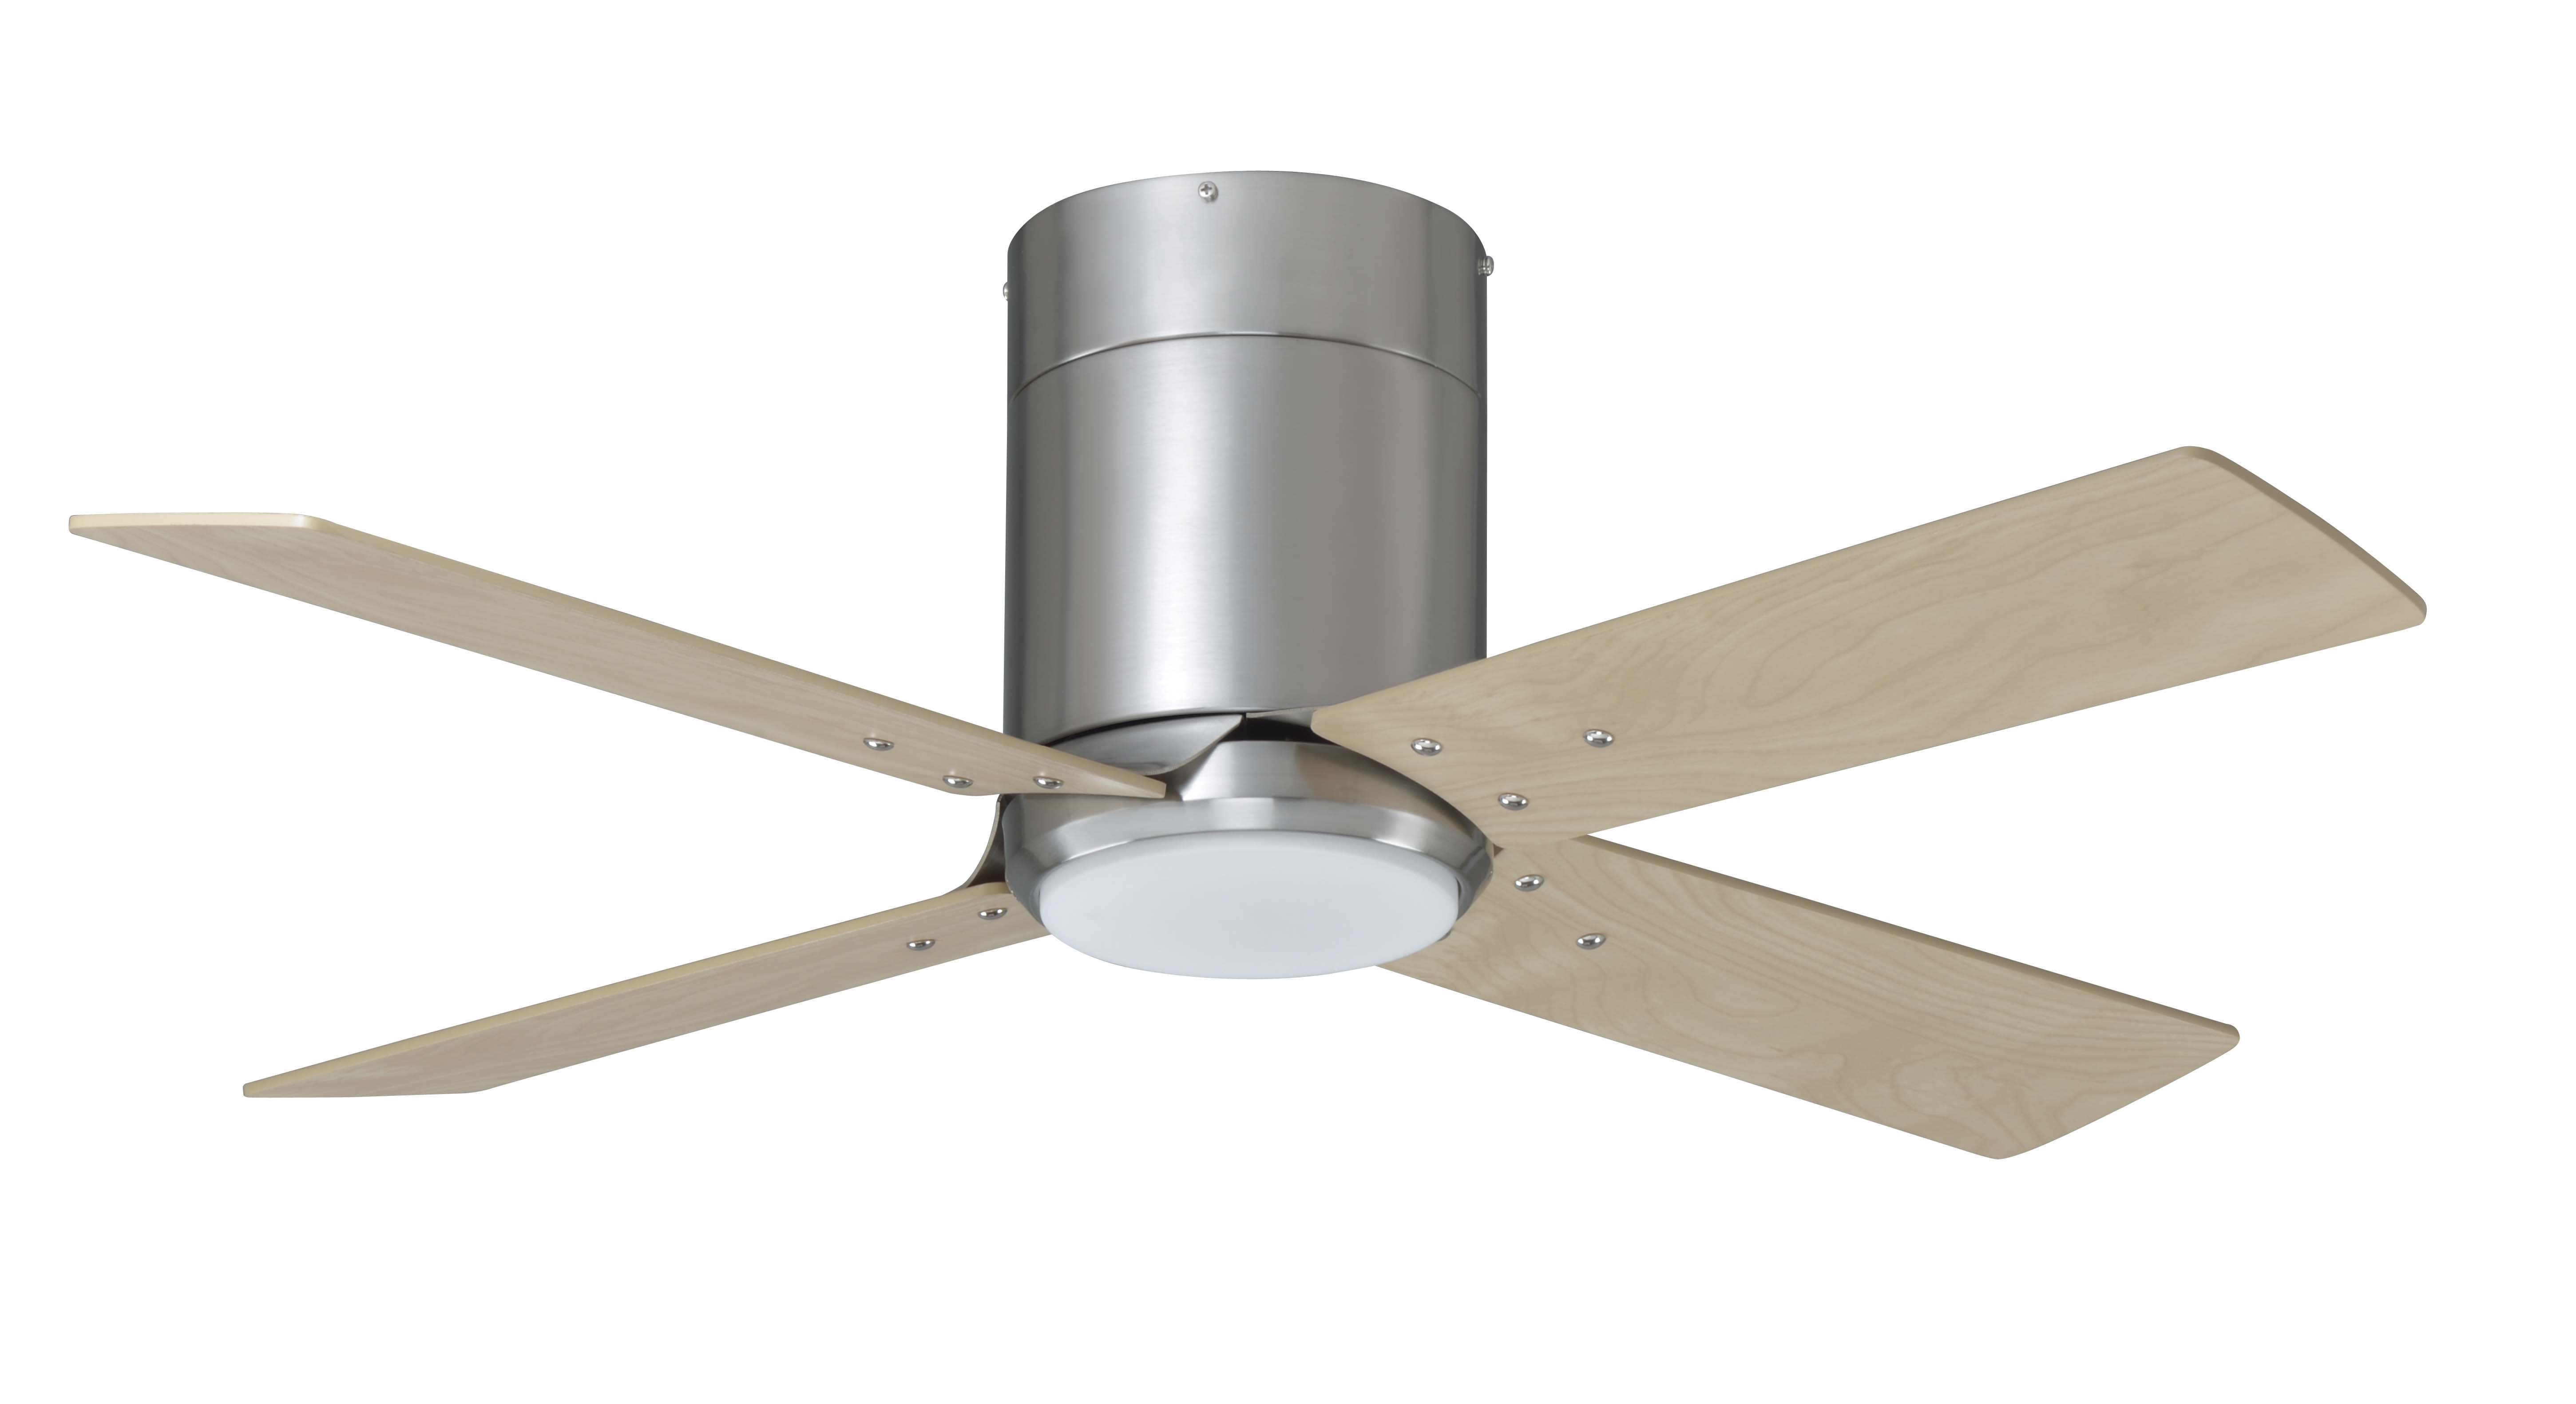 Ceiling Fans With Good Lighting 4 Blade 42